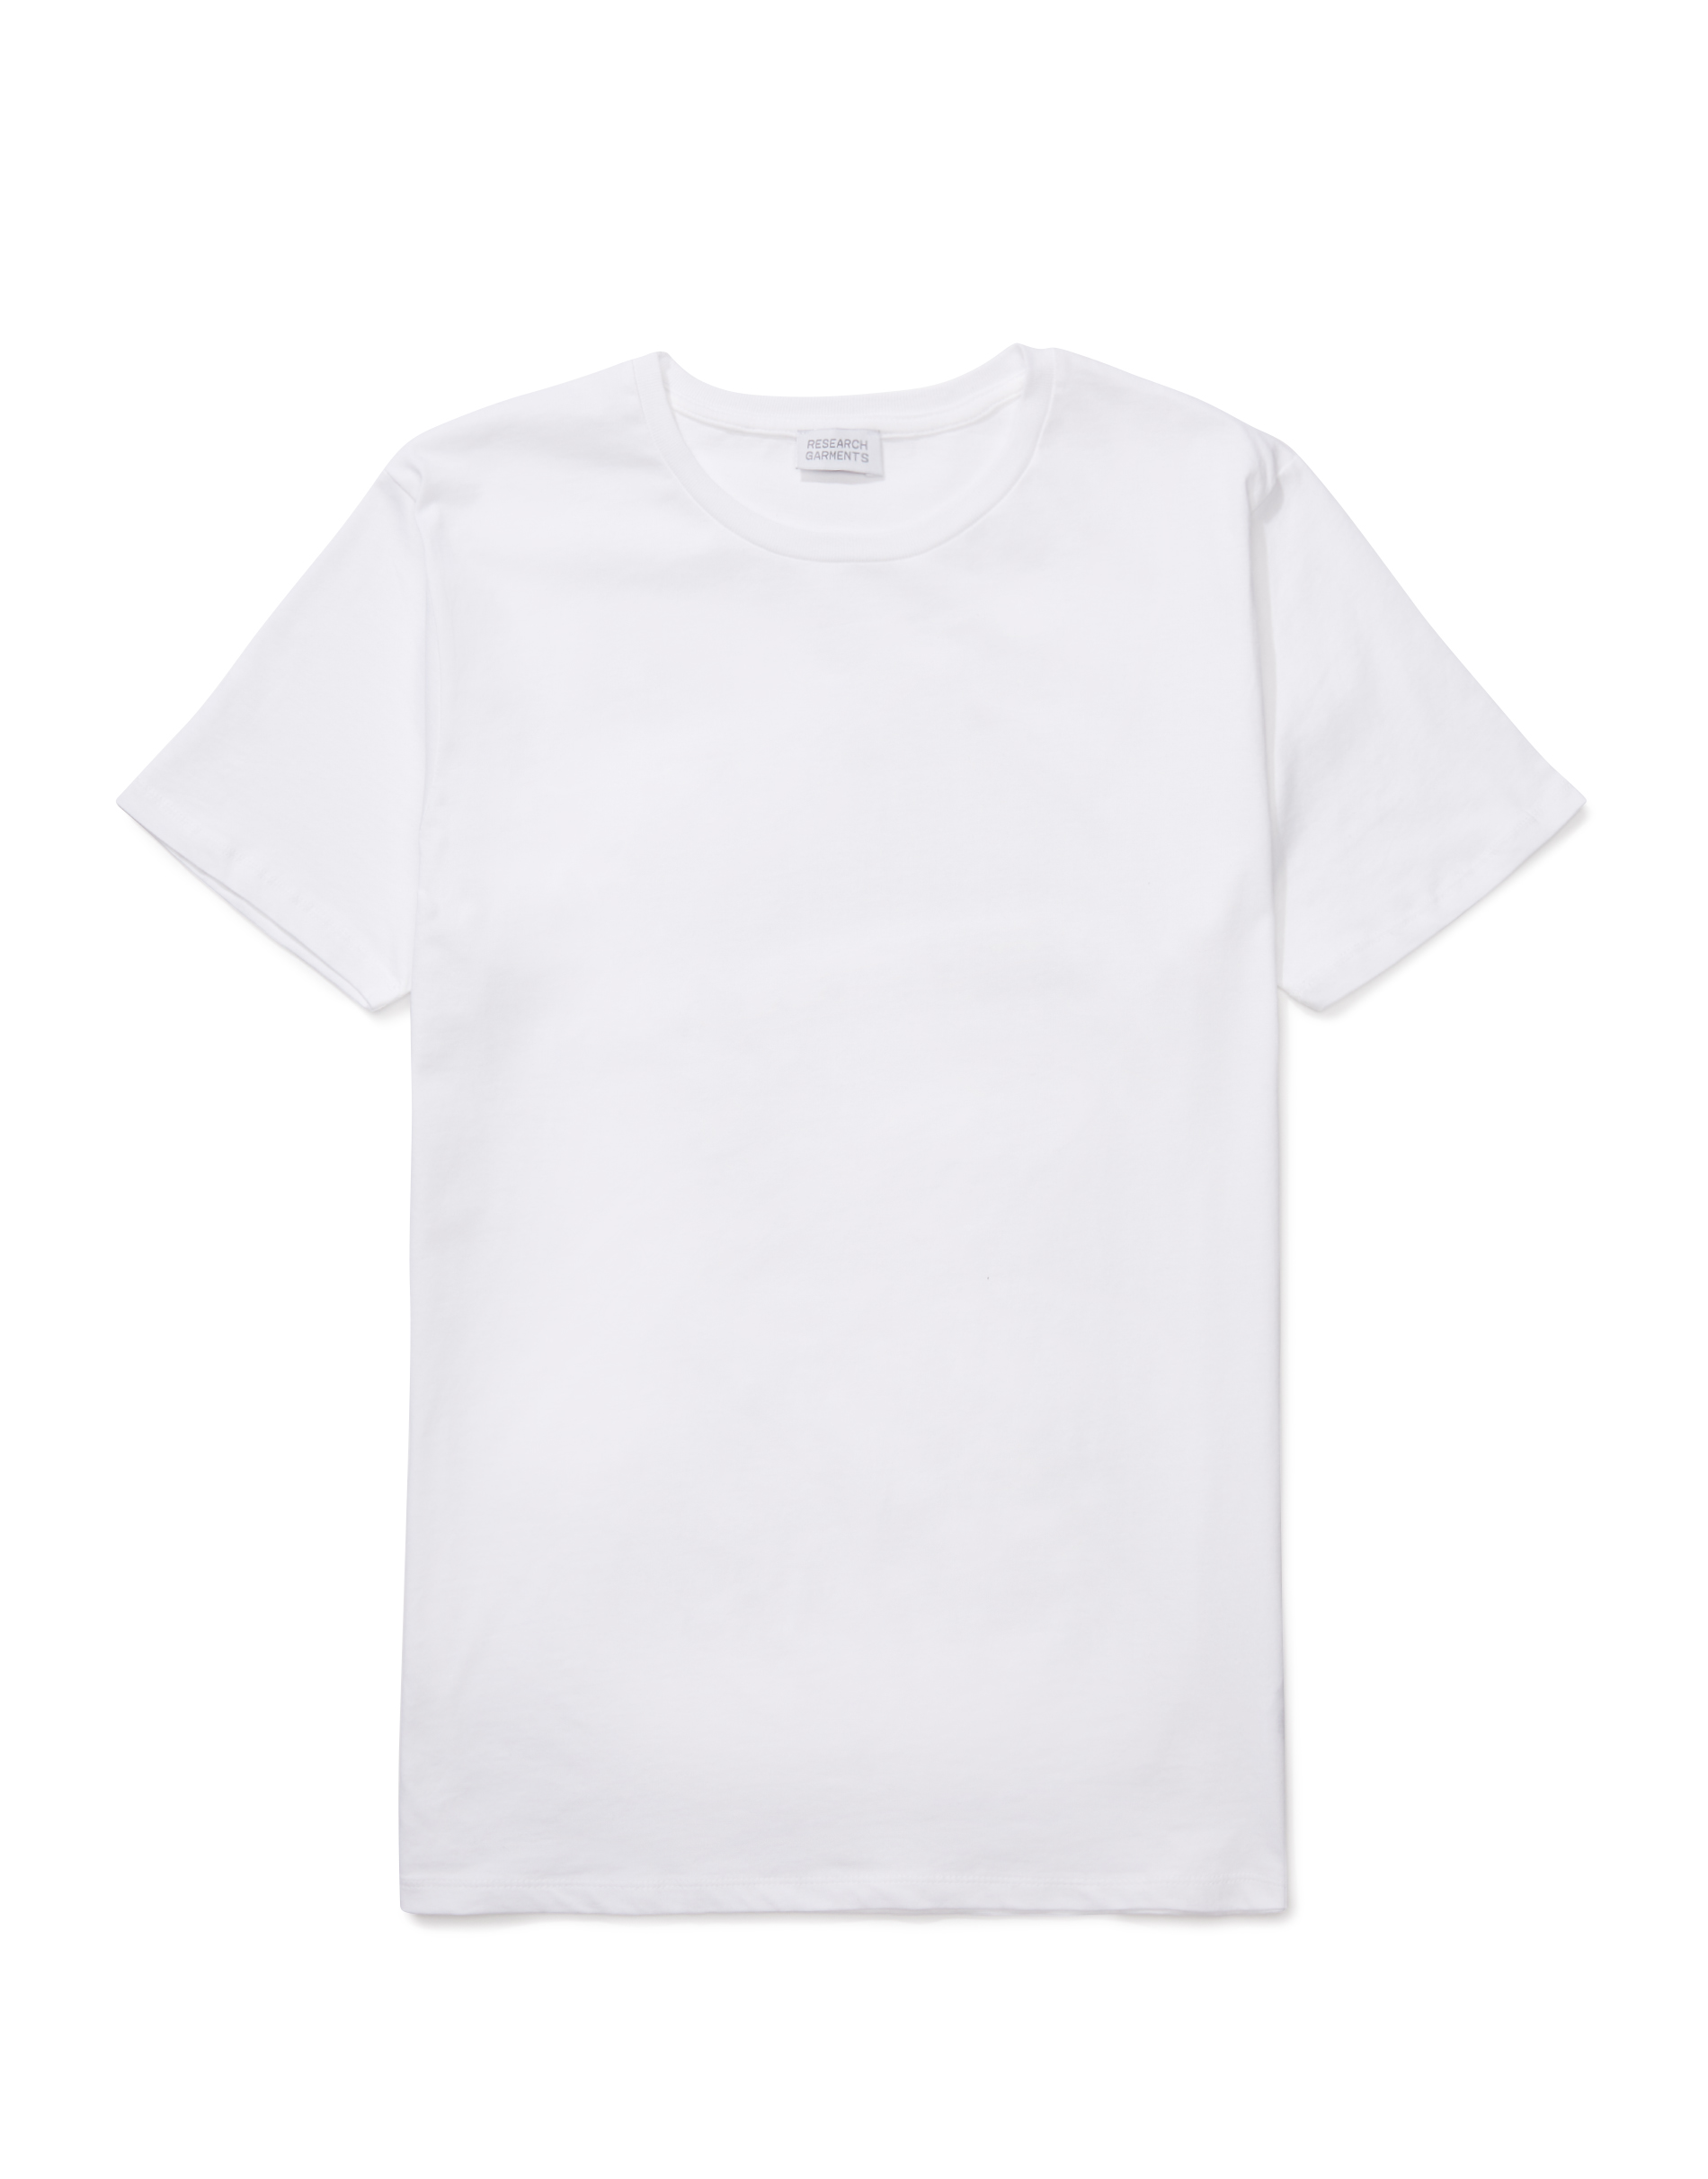 Research Garments The Perfect White Tee